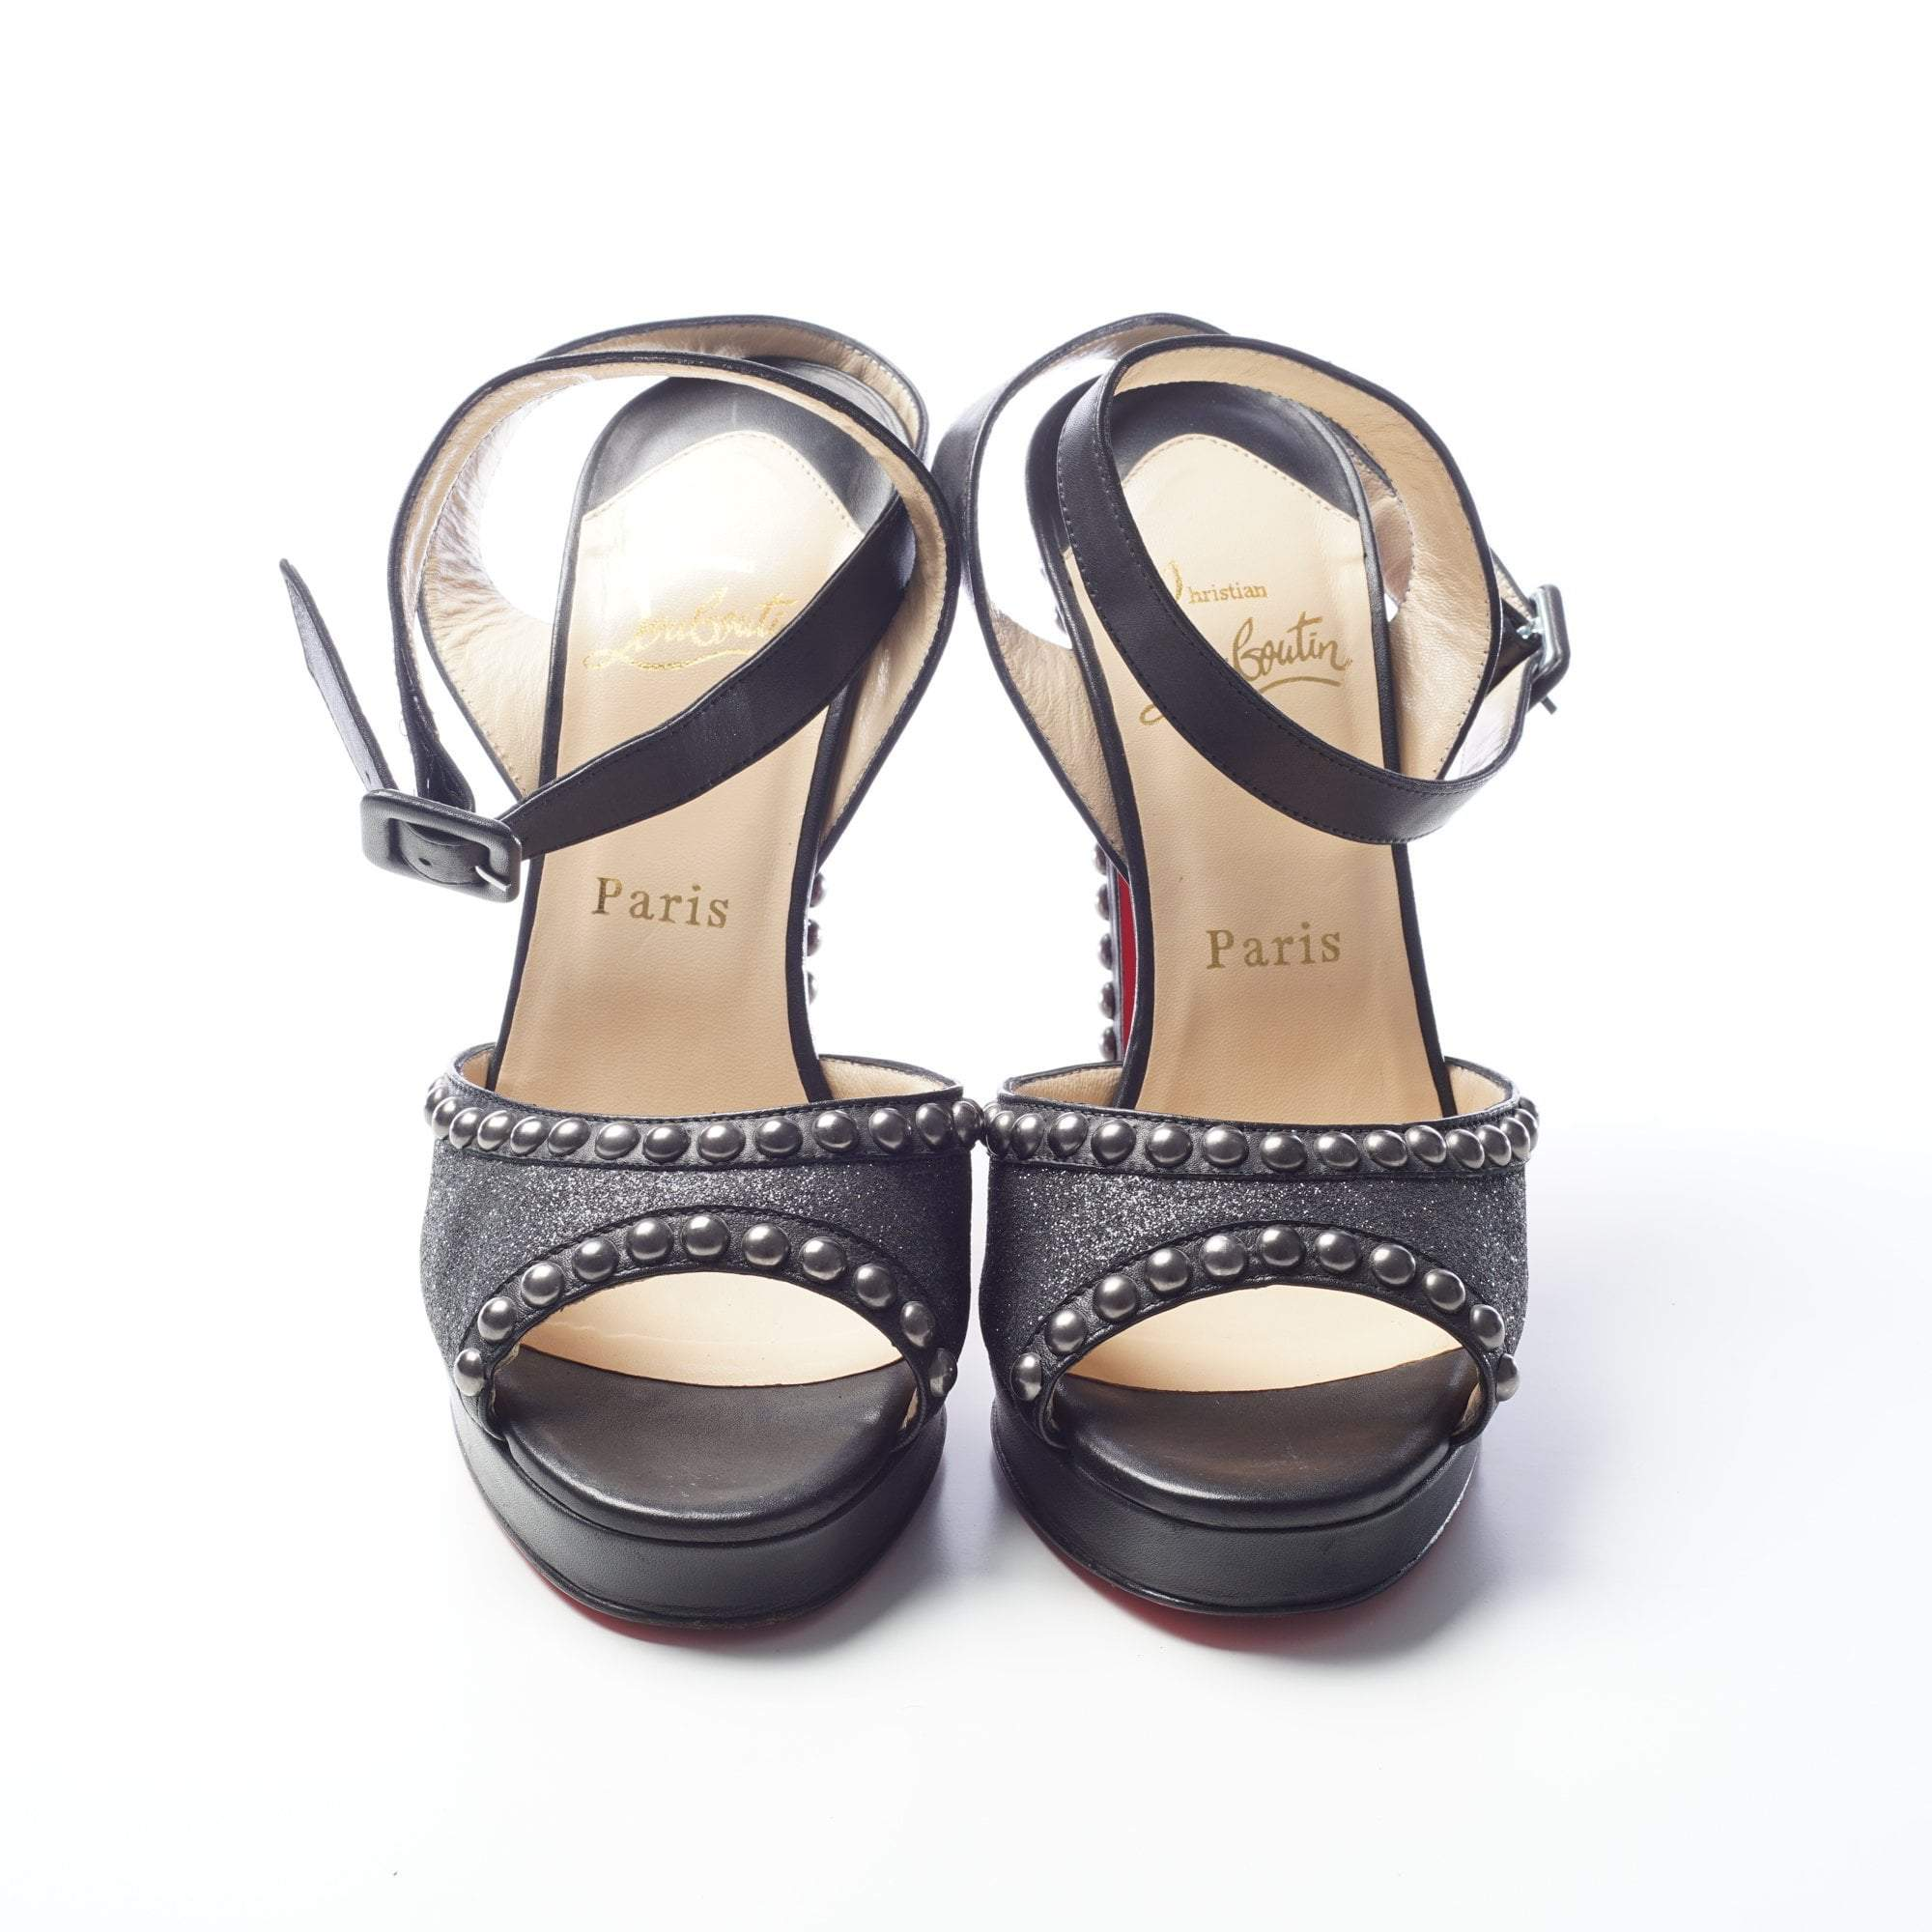 Christian Louboutin Black Leather Glitter Gun Metal Studded Heels